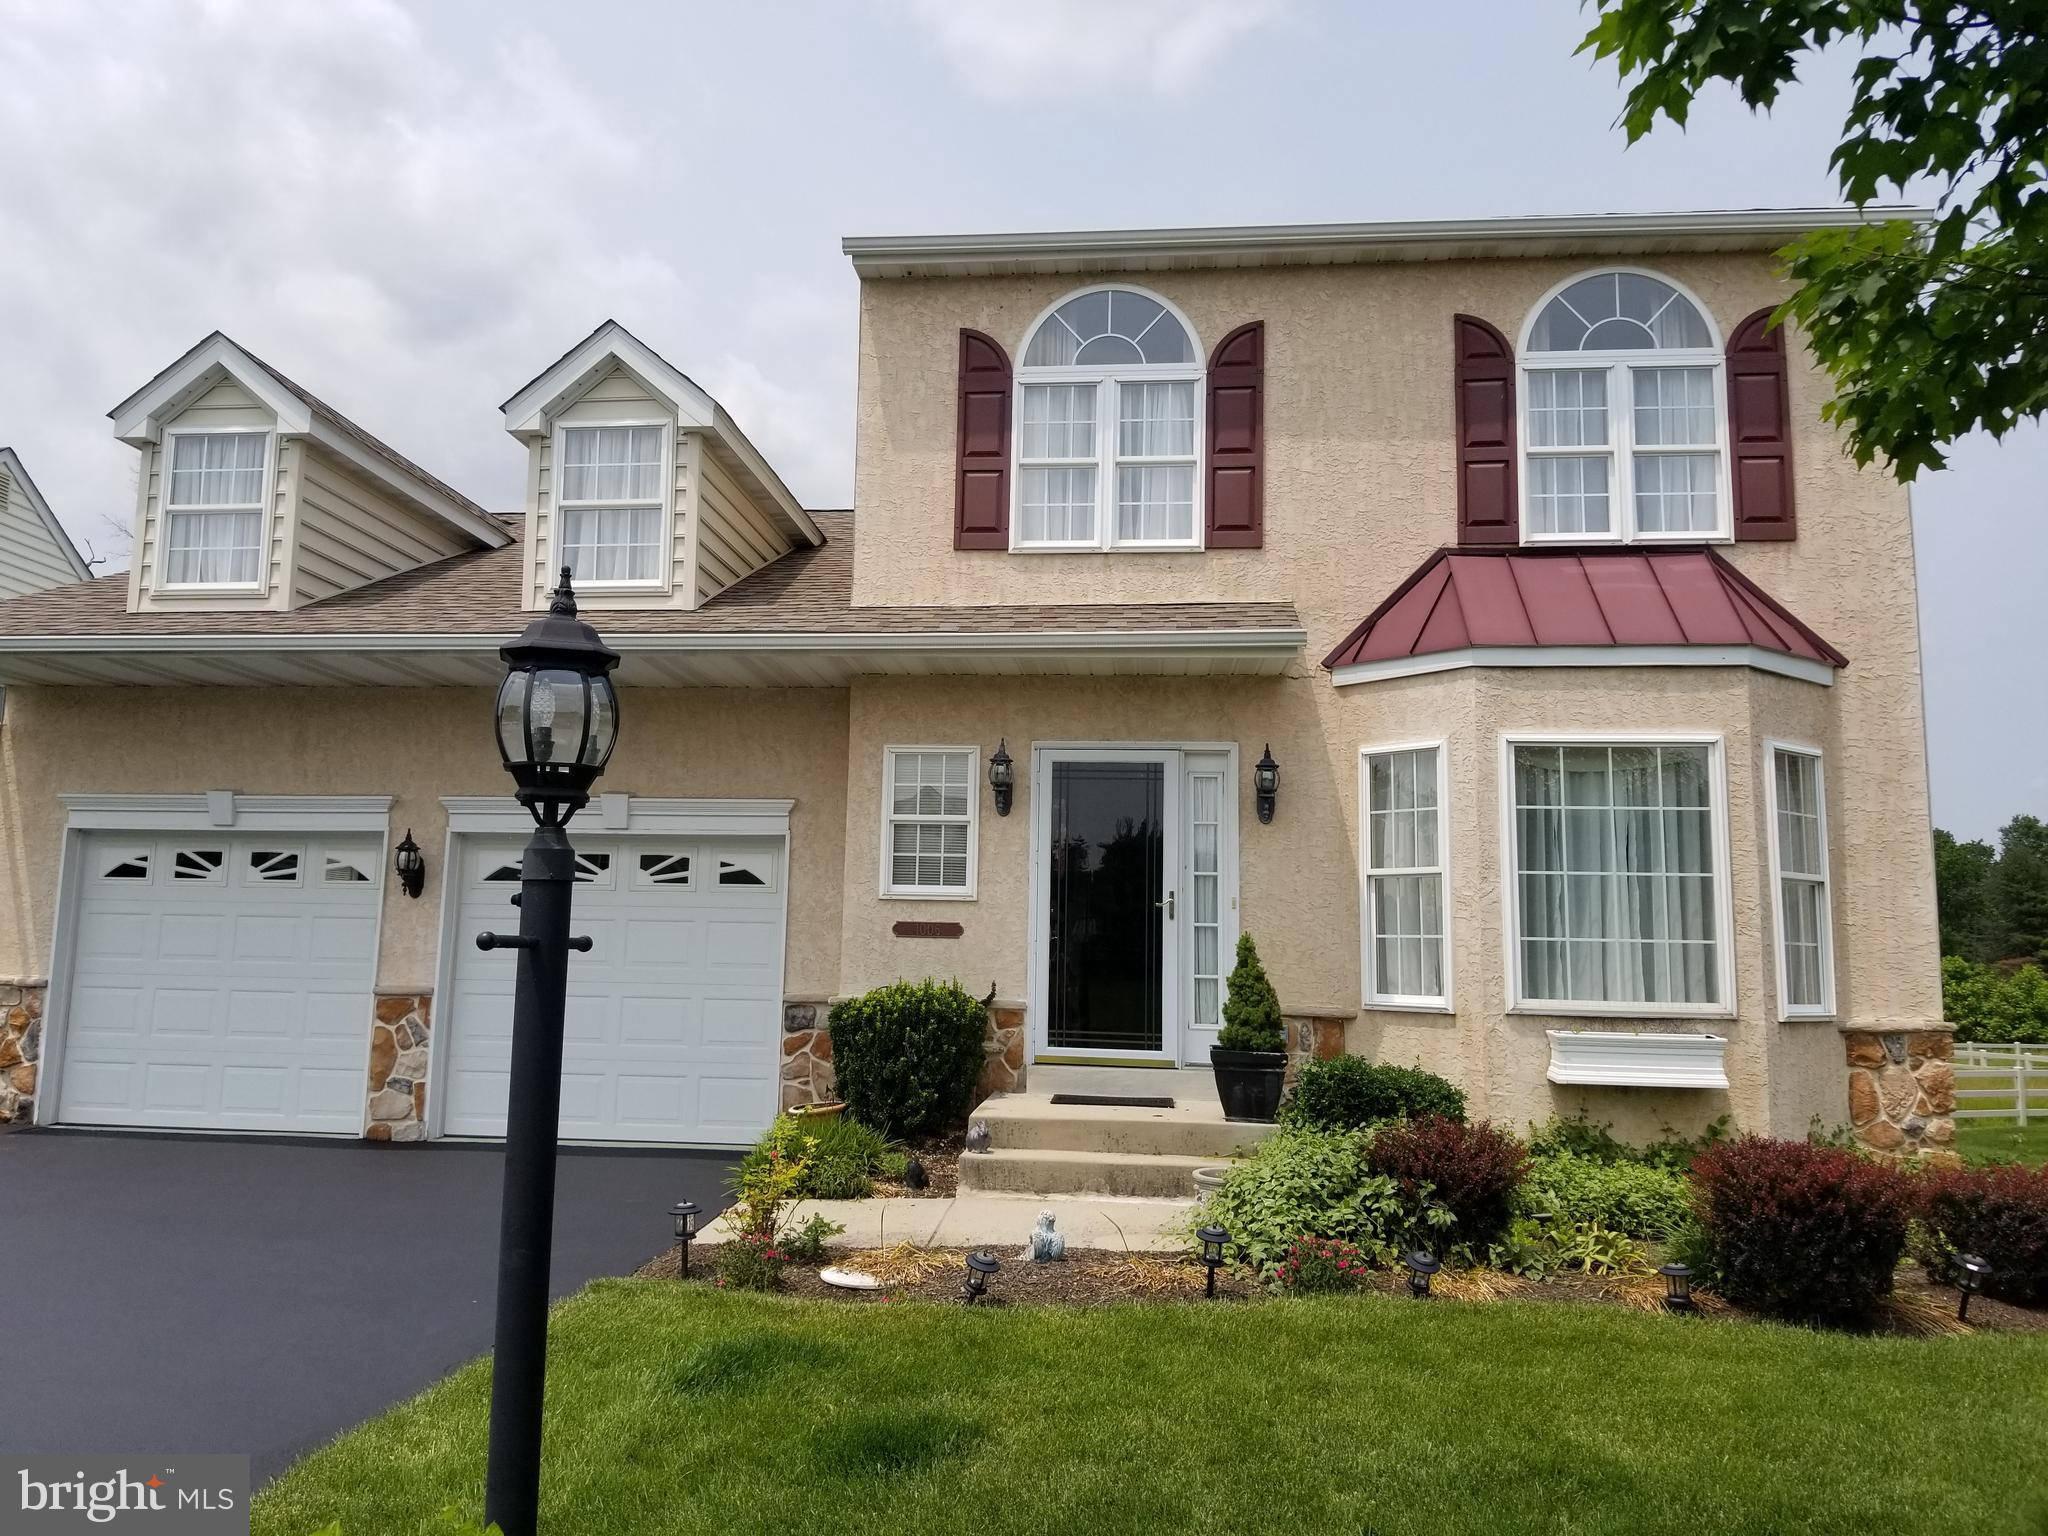 1006 BELMONT, GARNET VALLEY, PA 19061